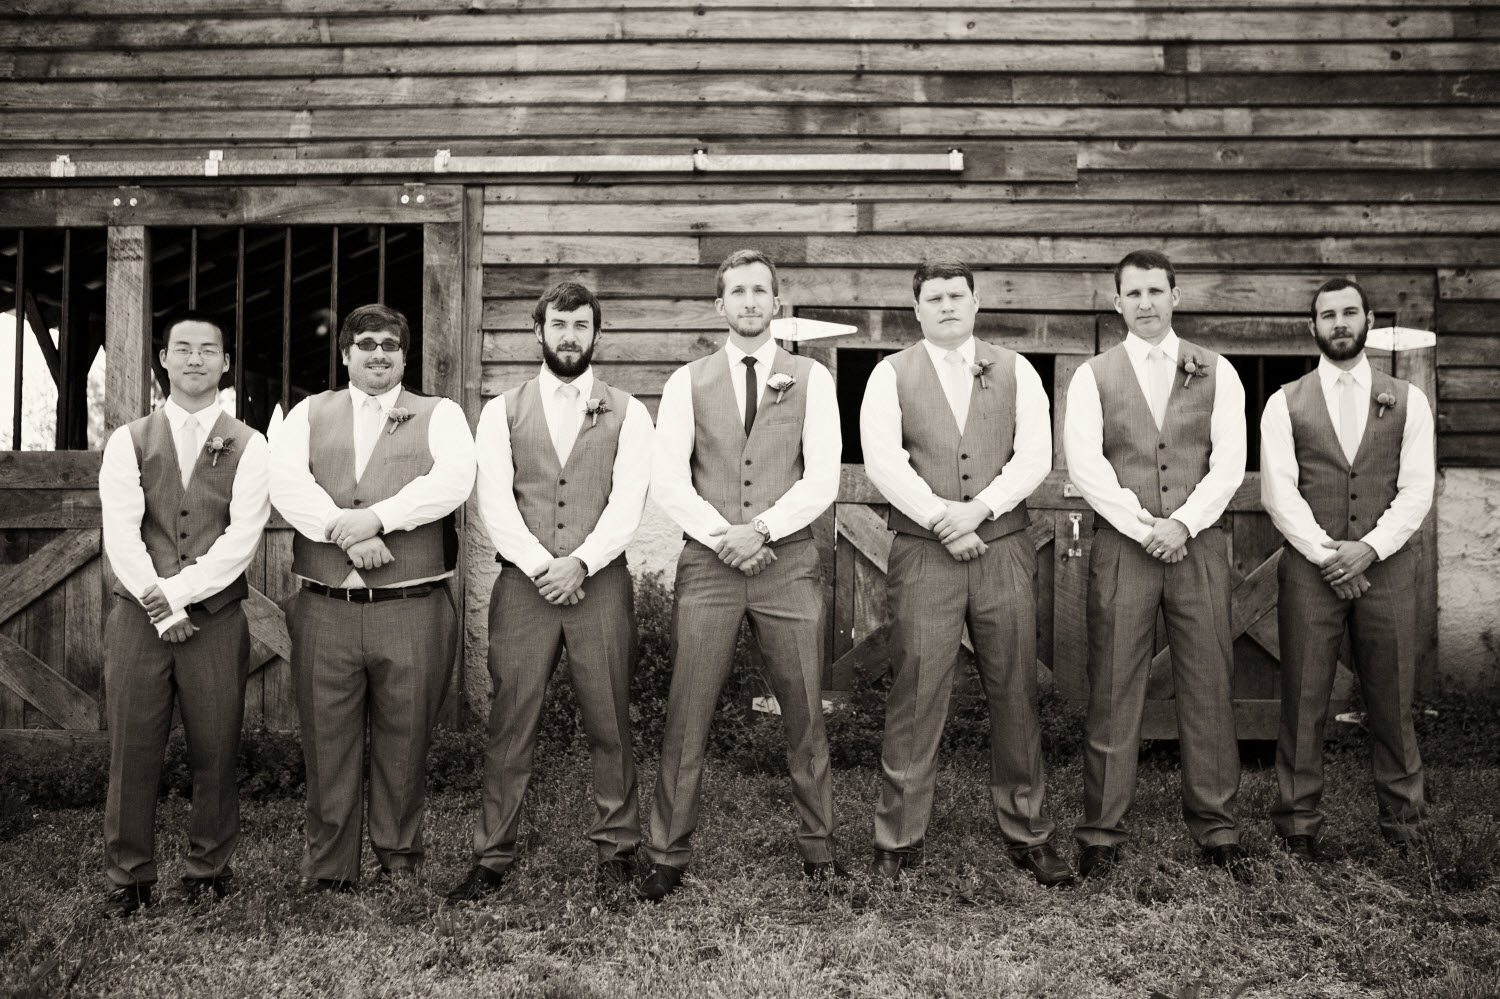 Outdoor Rustic Wedding In Tennessee With Dapperly Dressed